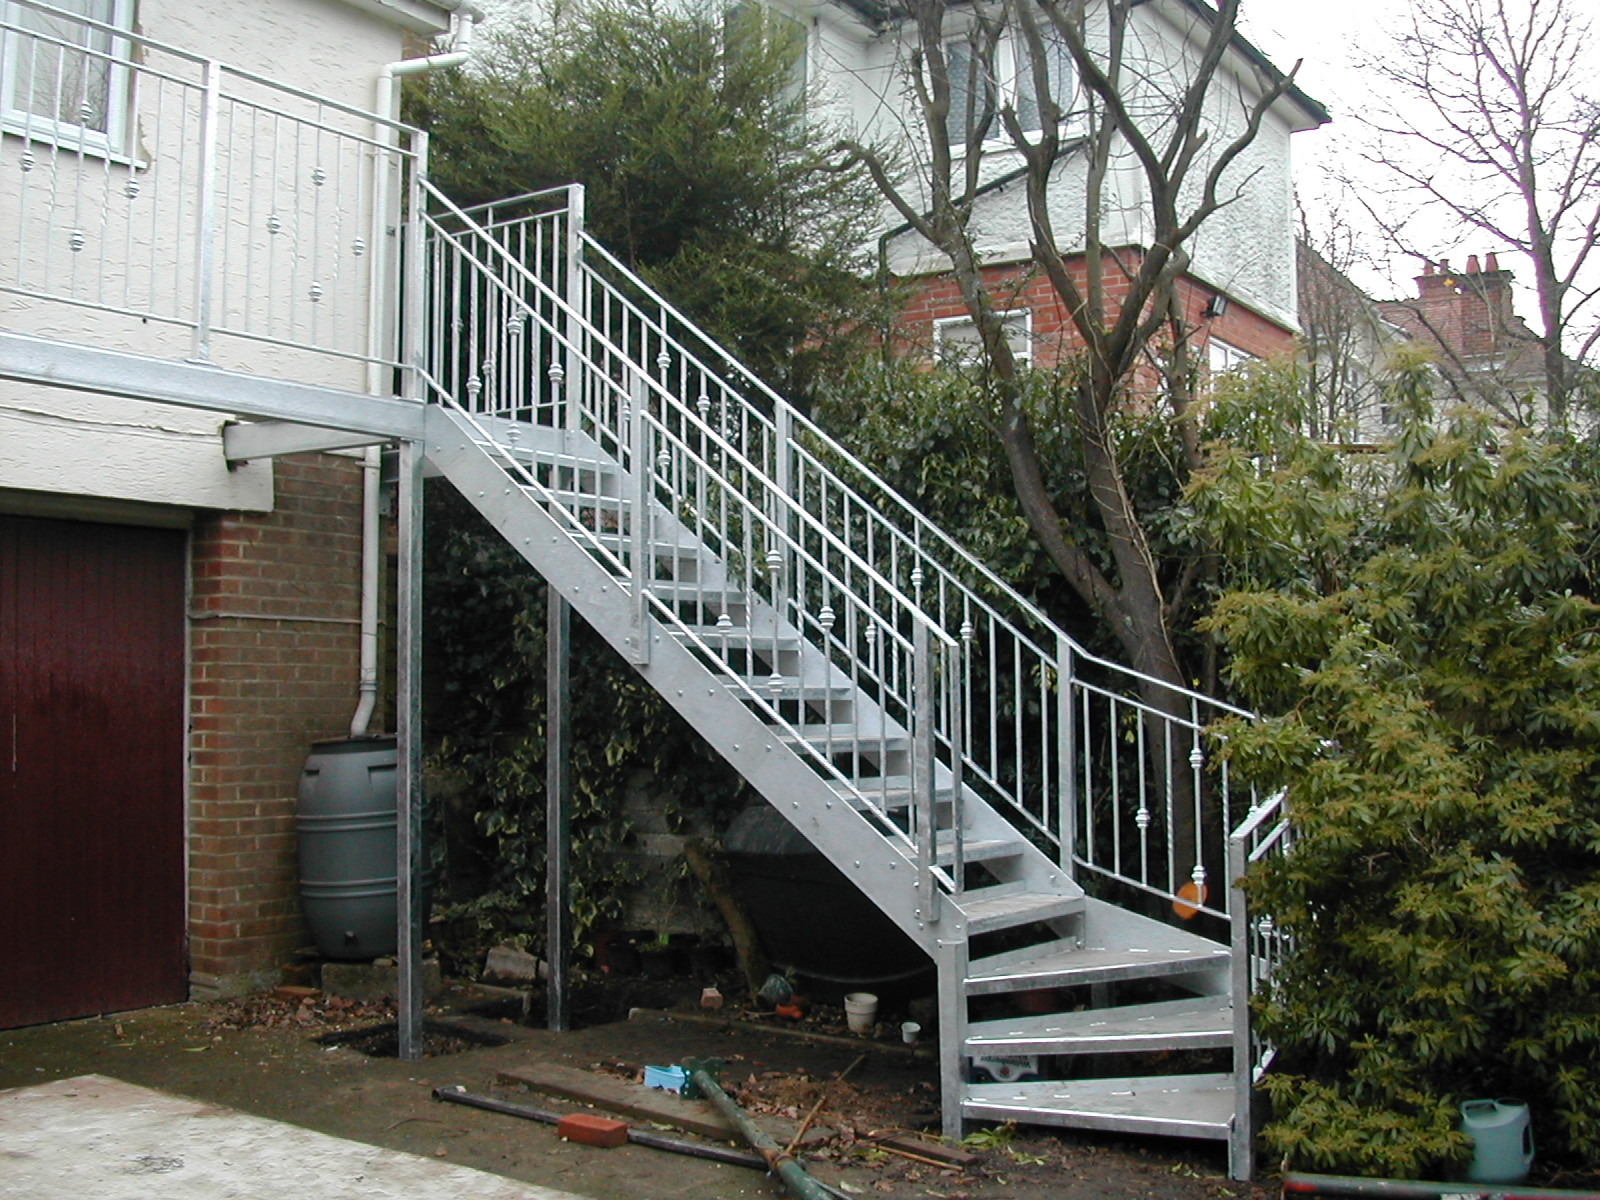 Galvanized Stairs Down from a Garden Balcony